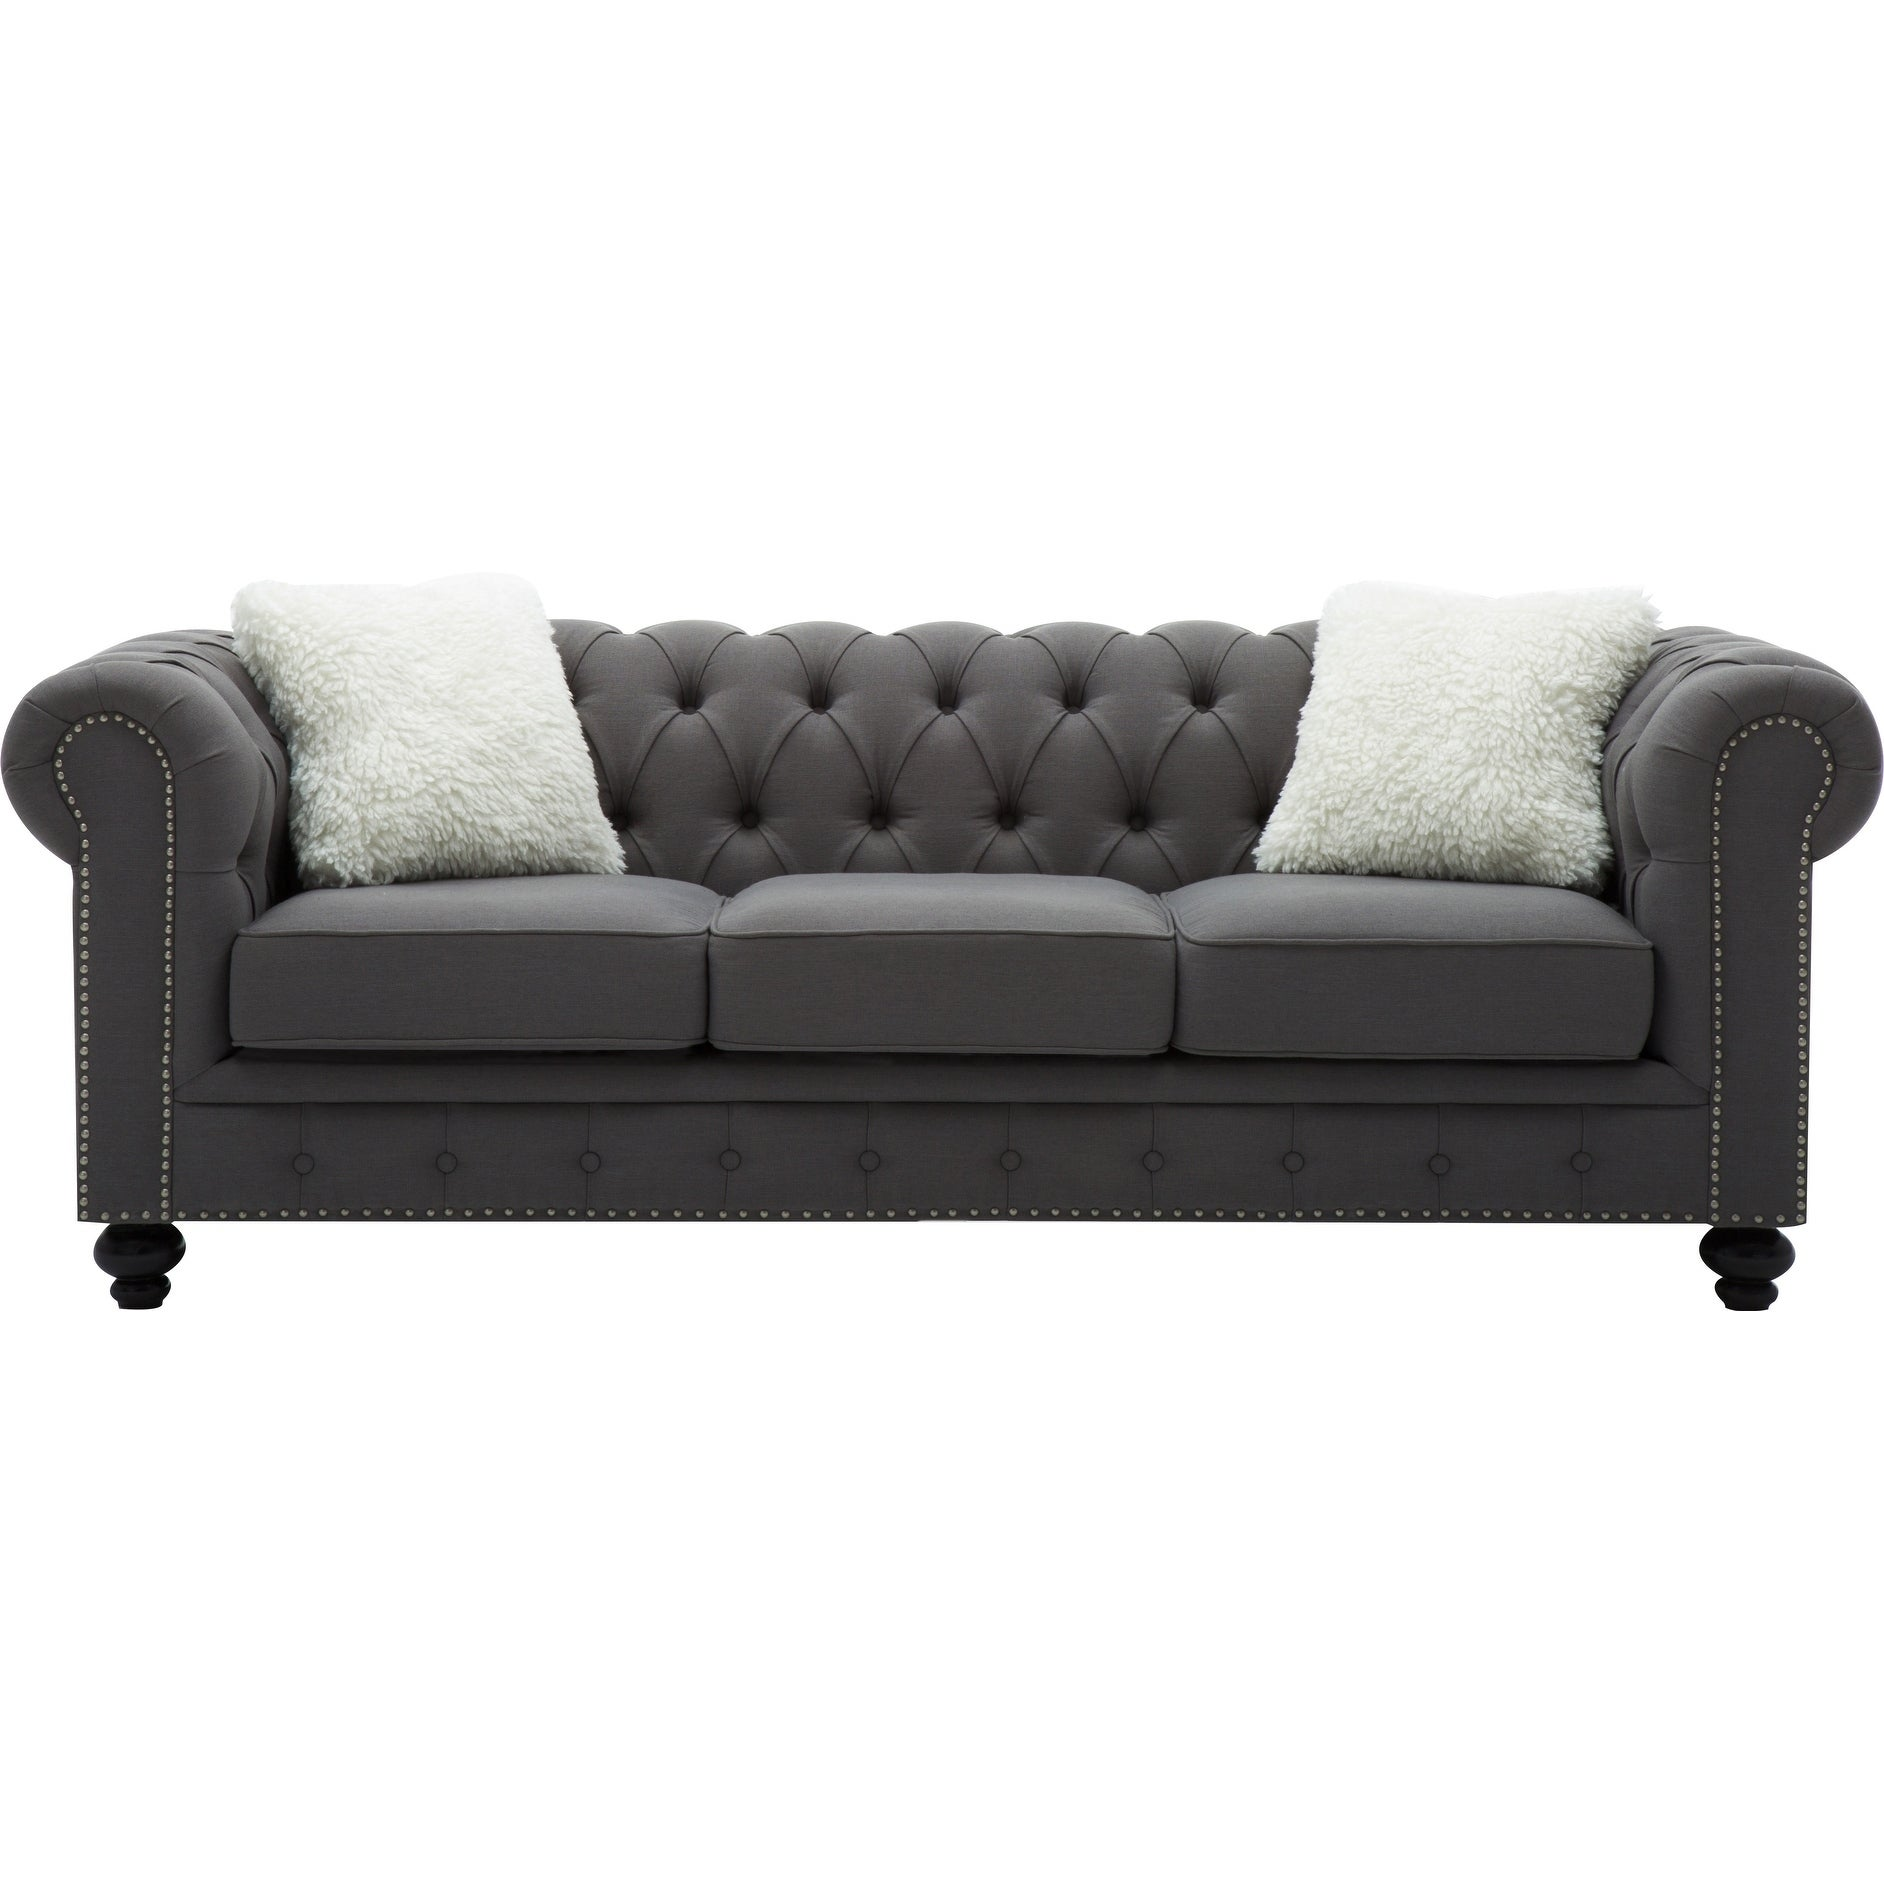 Best Quality Furniture Grey Chesterfield Sofa With Accent Pillows